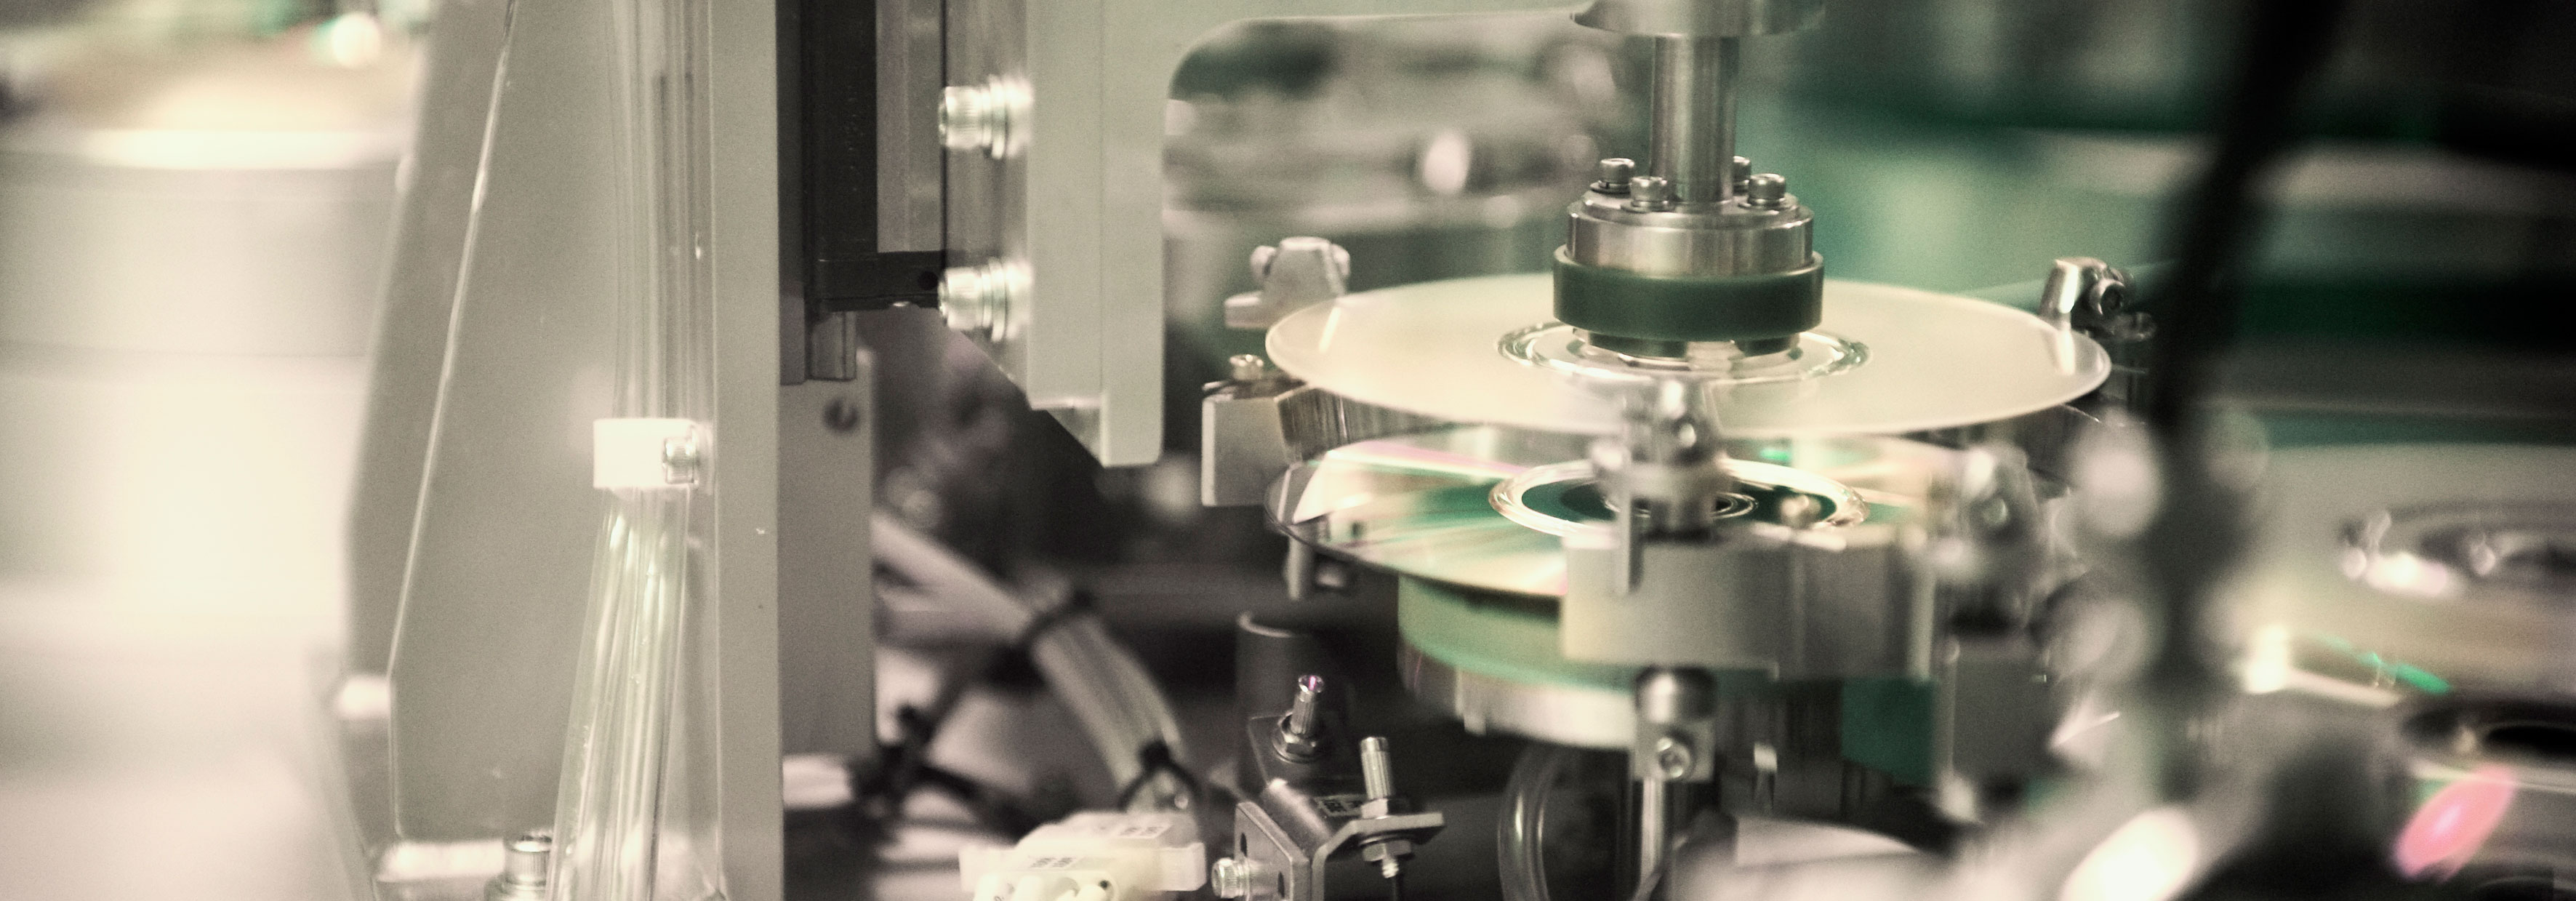 DVD Replication |Disc Manufacturing | Los Angeles